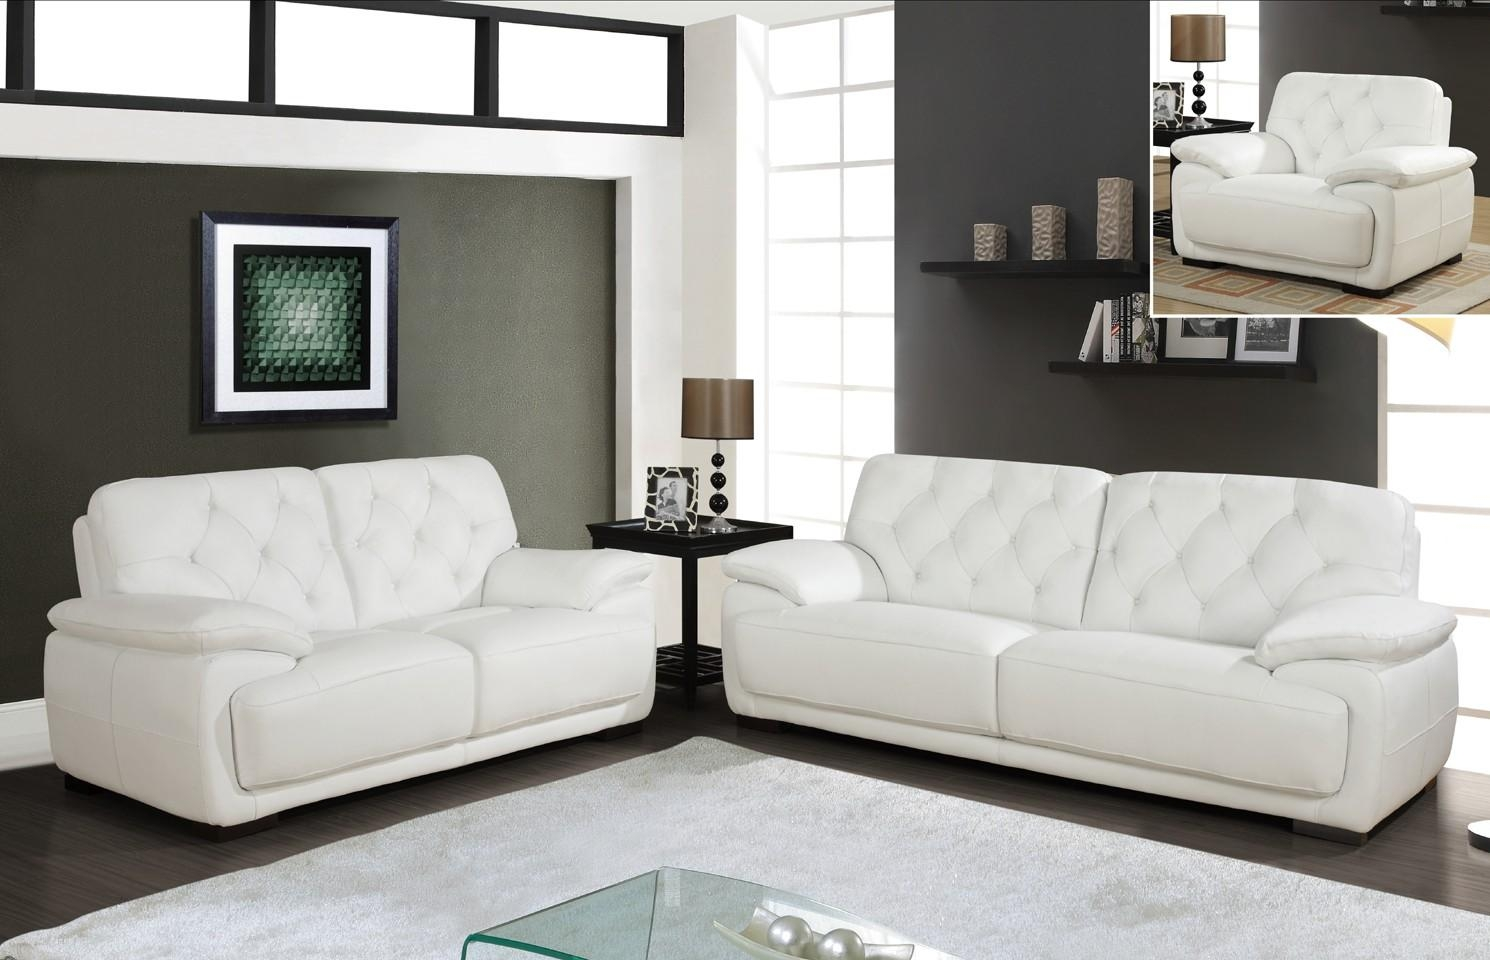 Sofas Center : Maxresdefault Leather Whitea Amazing Images Intended For Off White Leather Sofa And Loveseat (View 13 of 20)